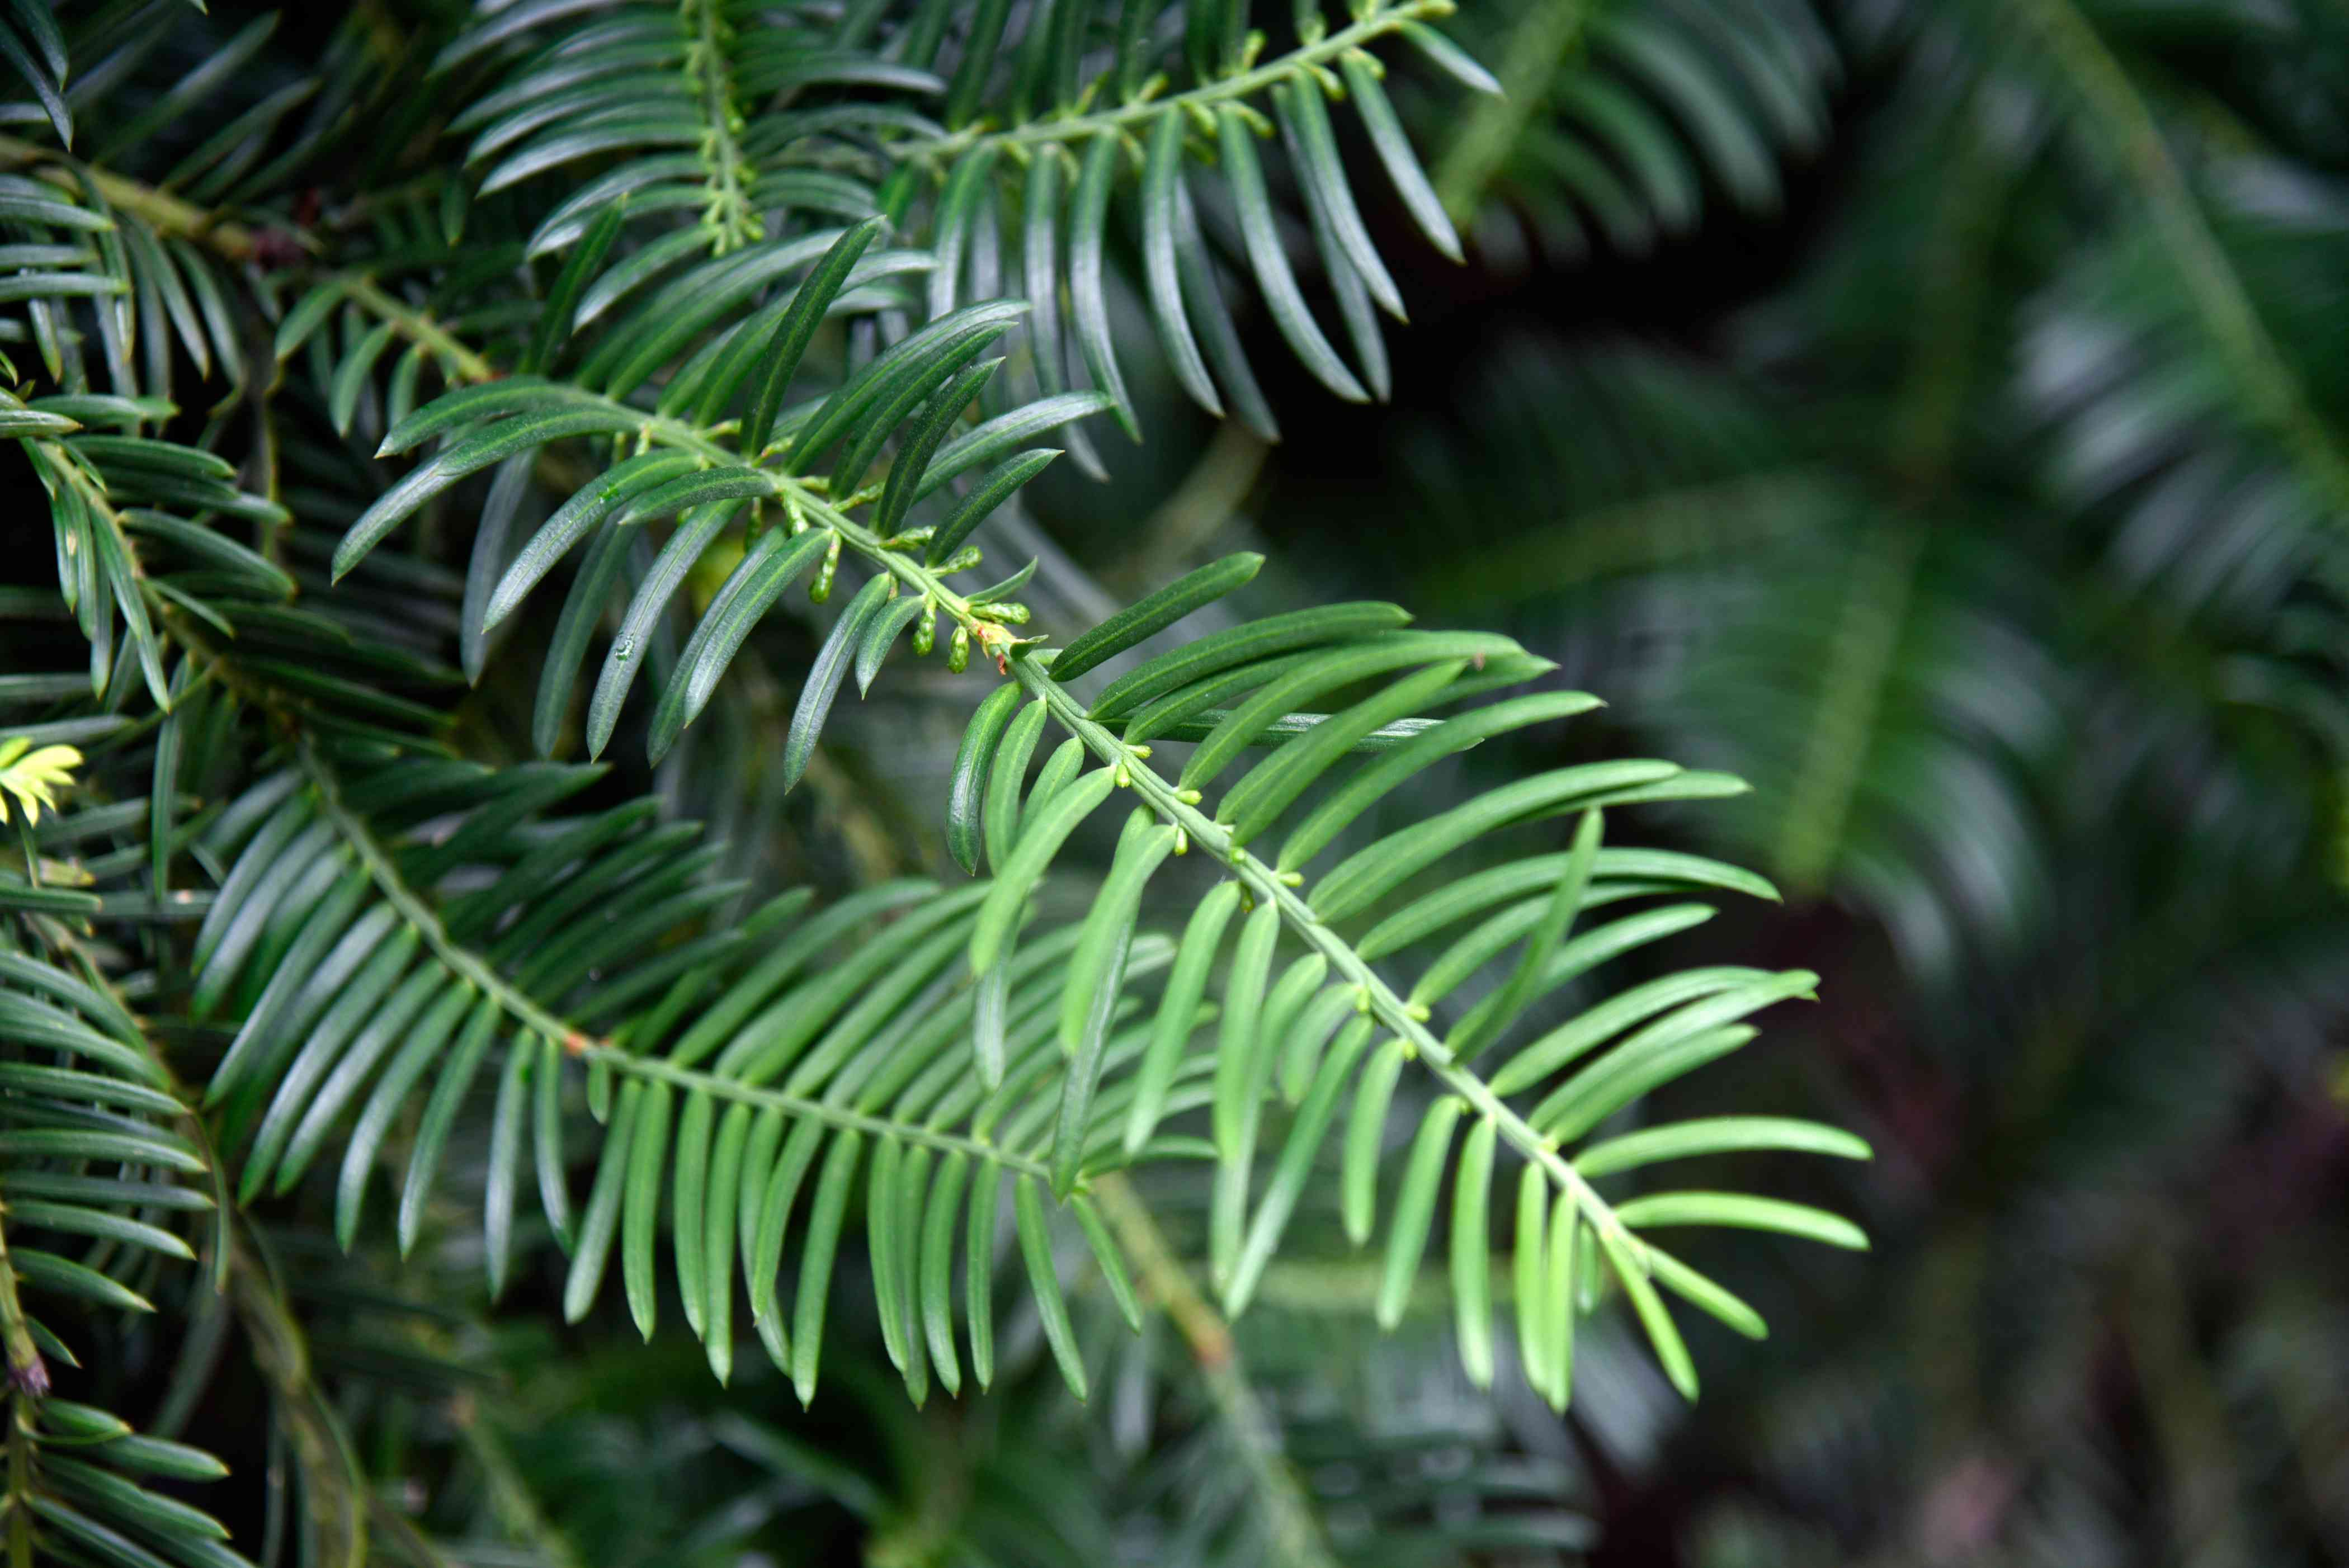 Japanese plum yew shrub branch with long needle-like leaves closeup